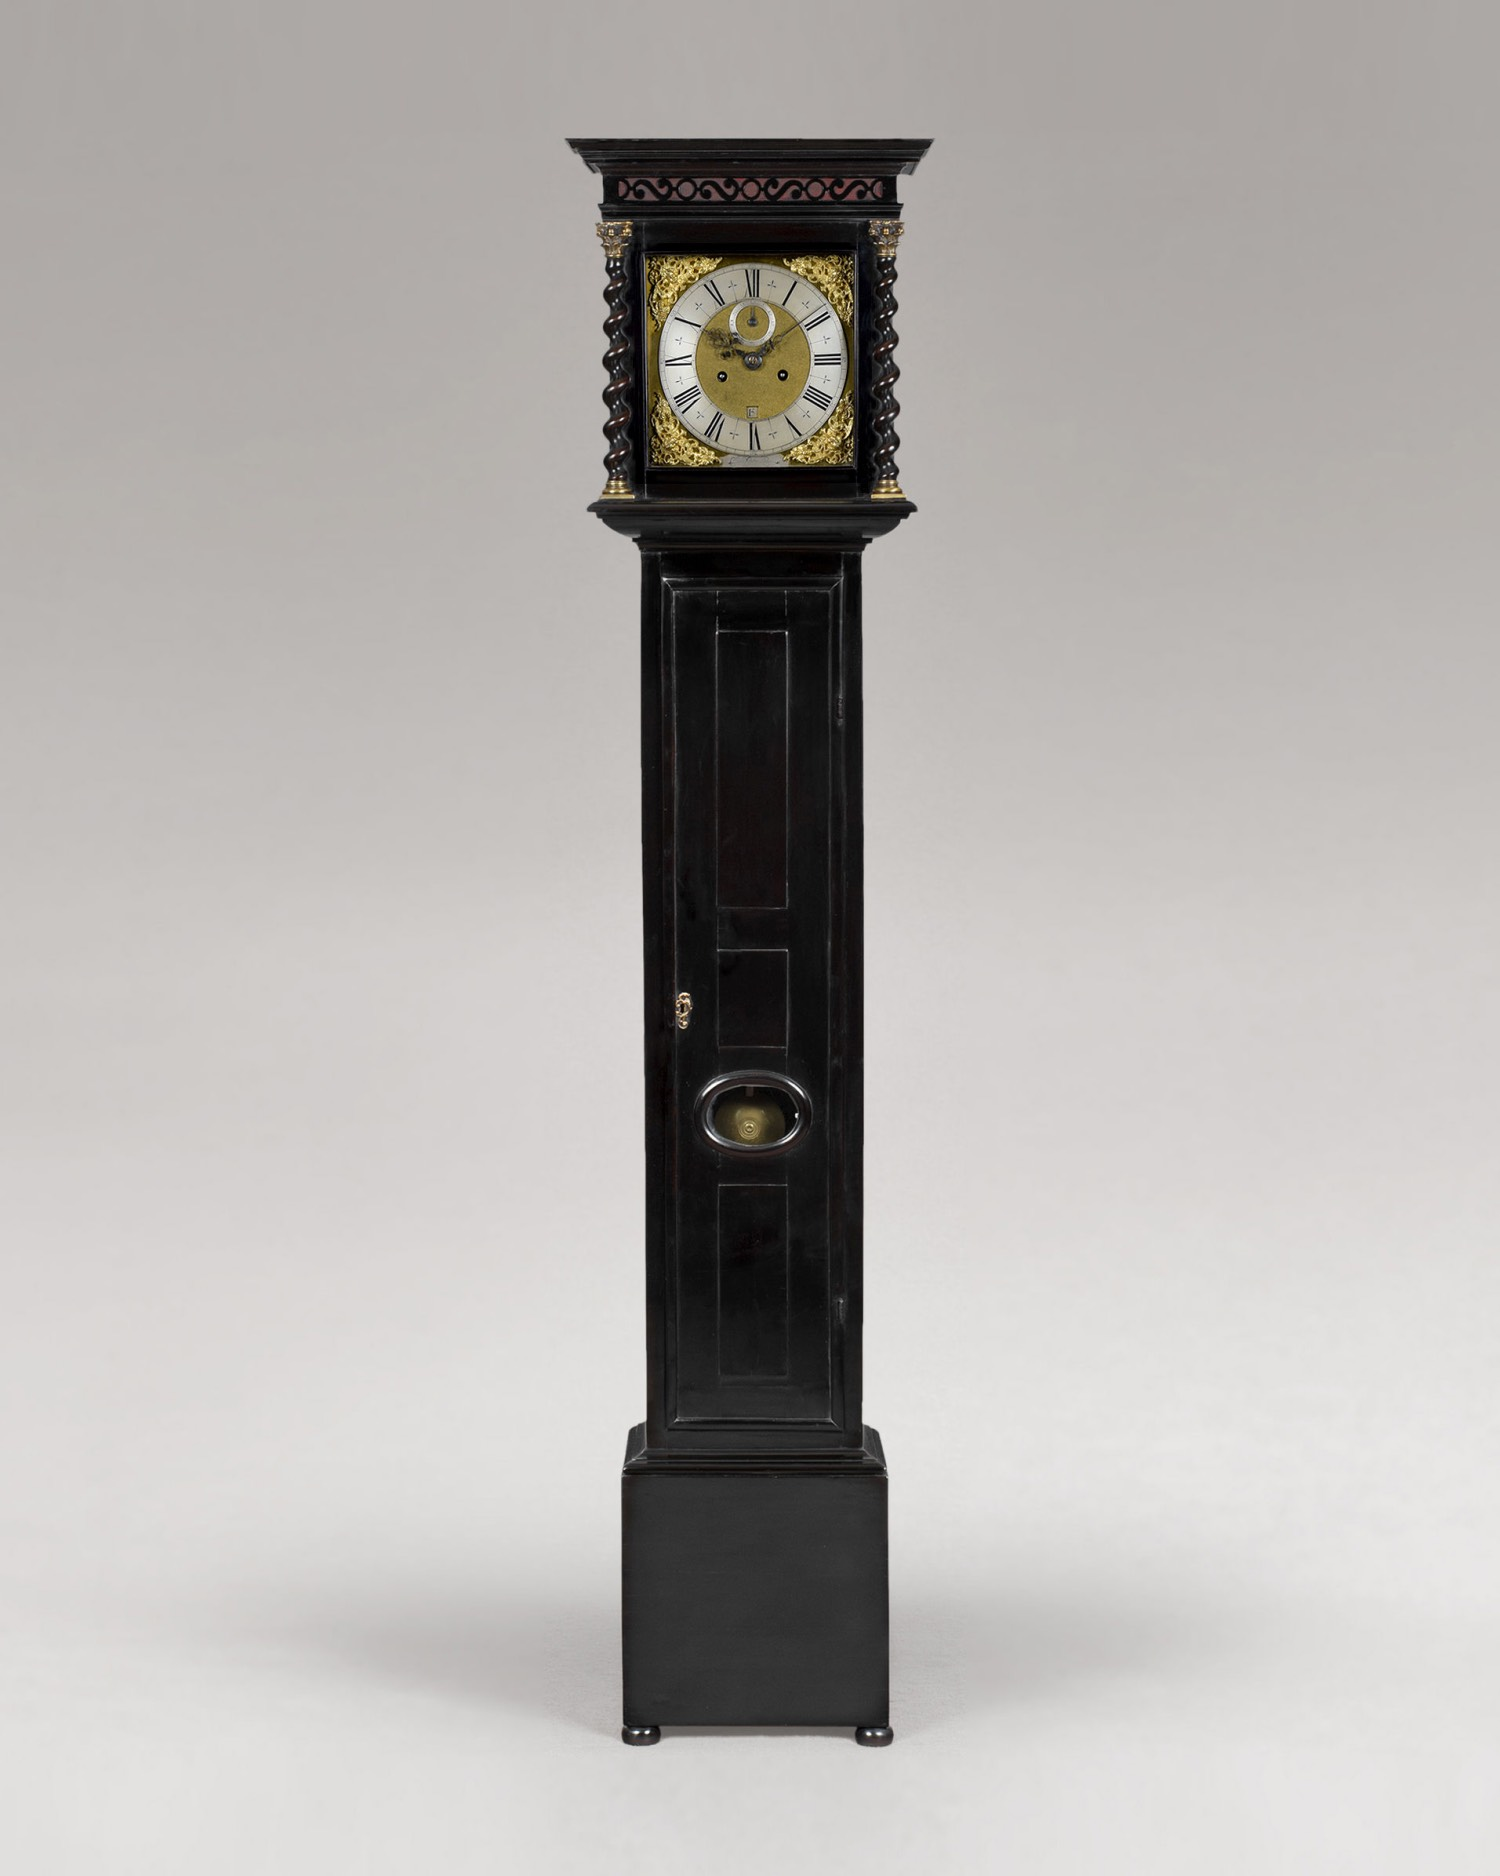 CHARLES GRETTON A SMALL AND RARE CHARLES II PERIOD EBONY LONGCASE CLOCK.